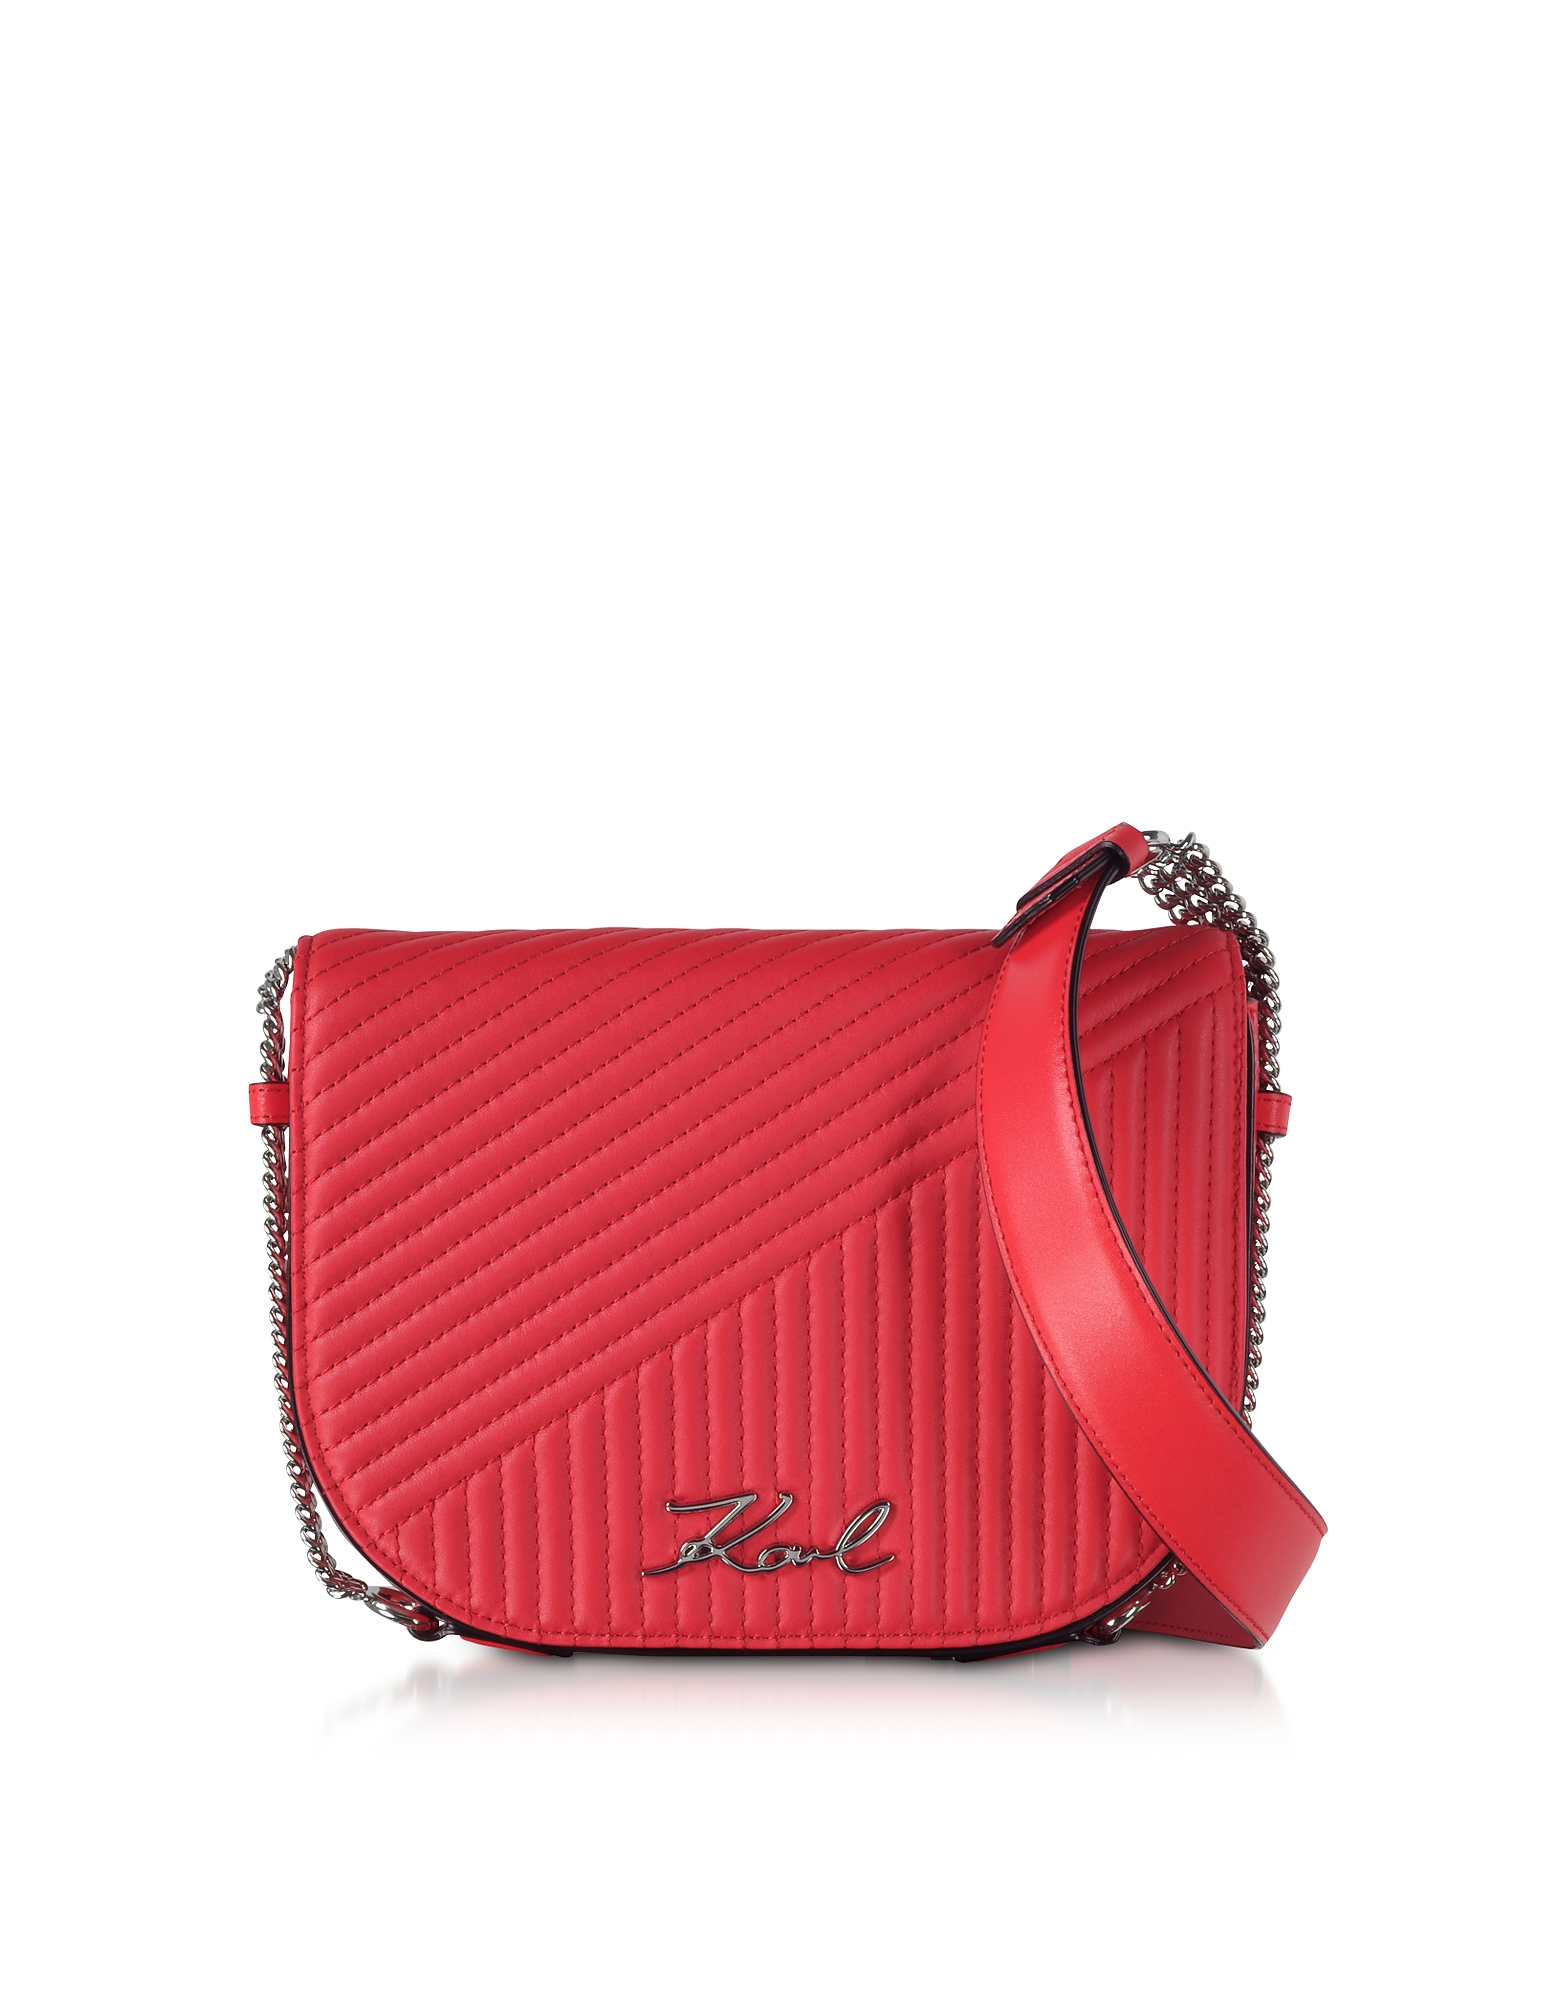 K/Signature Fire Red Quilted Leather Shoulder Bag